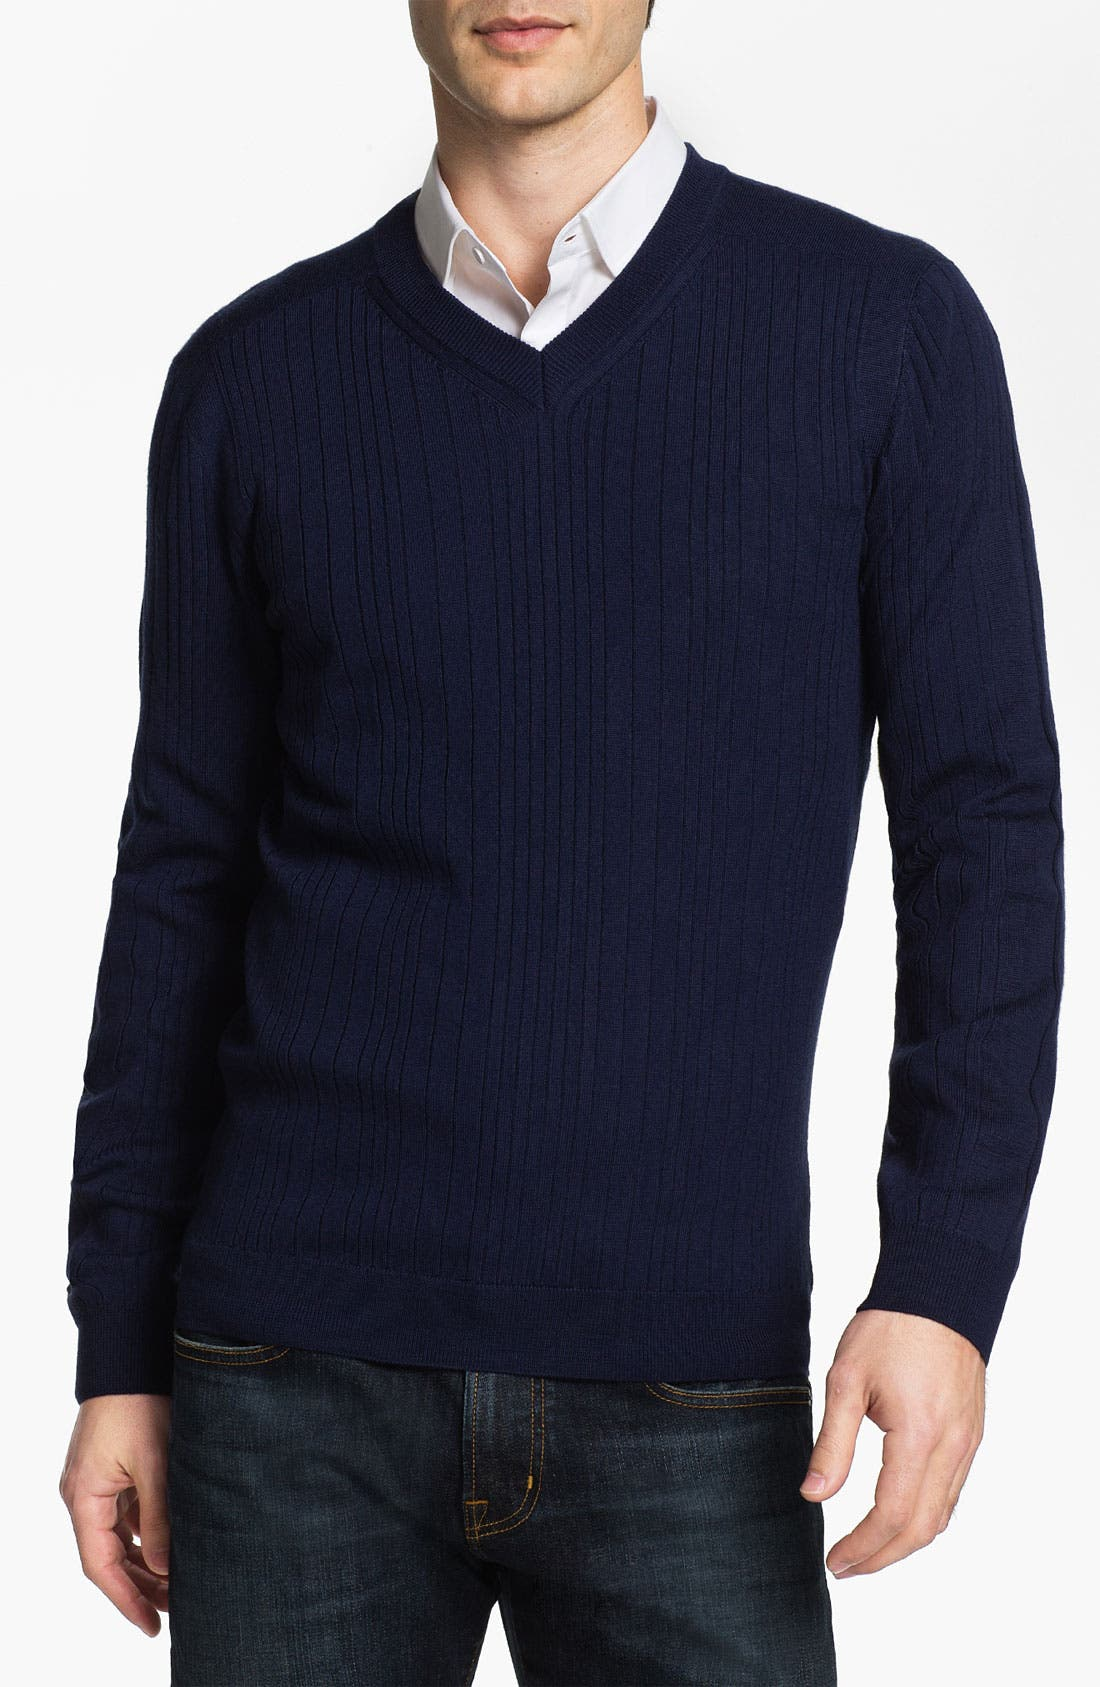 Alternate Image 1 Selected - HUGO 'Sagaro' V-Neck Wool Sweater